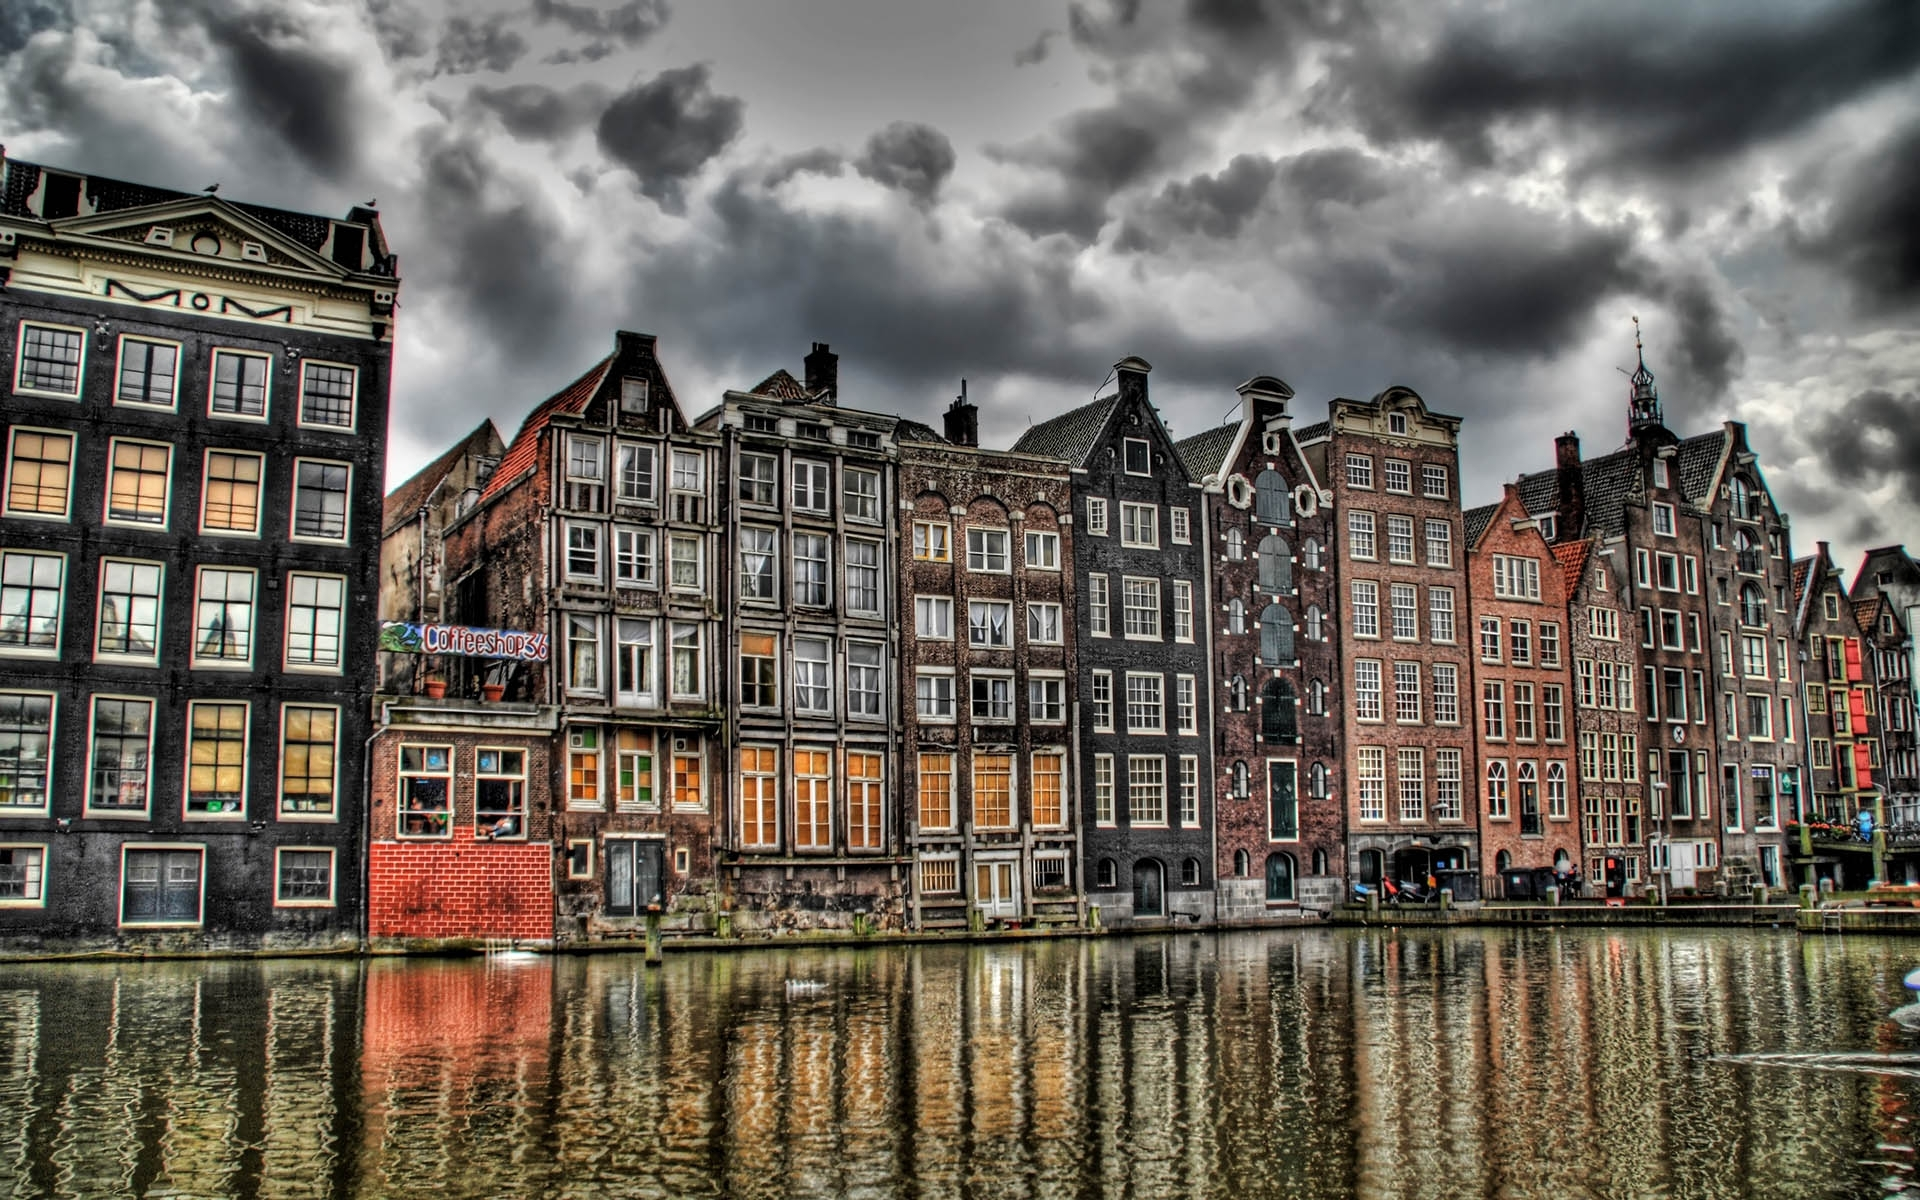 Amsterdam wallpapers pictures images - Wallpaper architektur ...